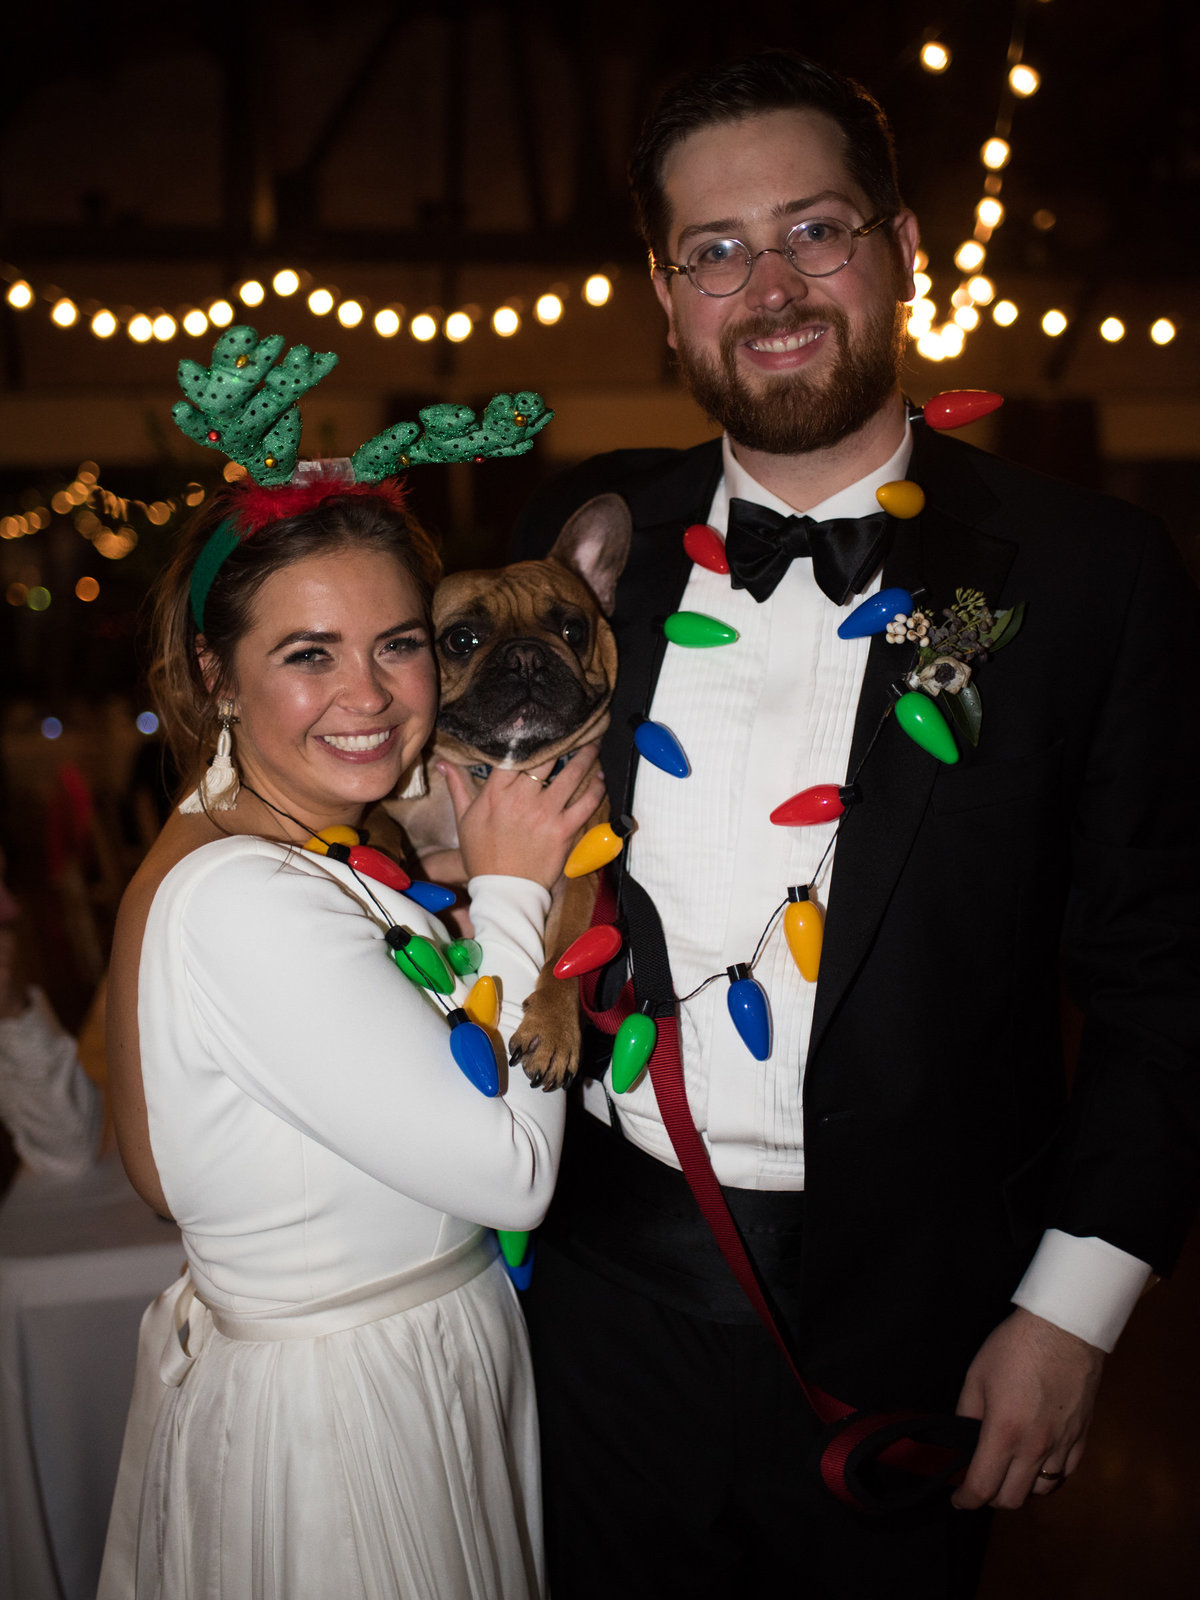 Courtney Hanson Photography - Festive Holiday Wedding in Dallas at Hickory Street Annex-0565